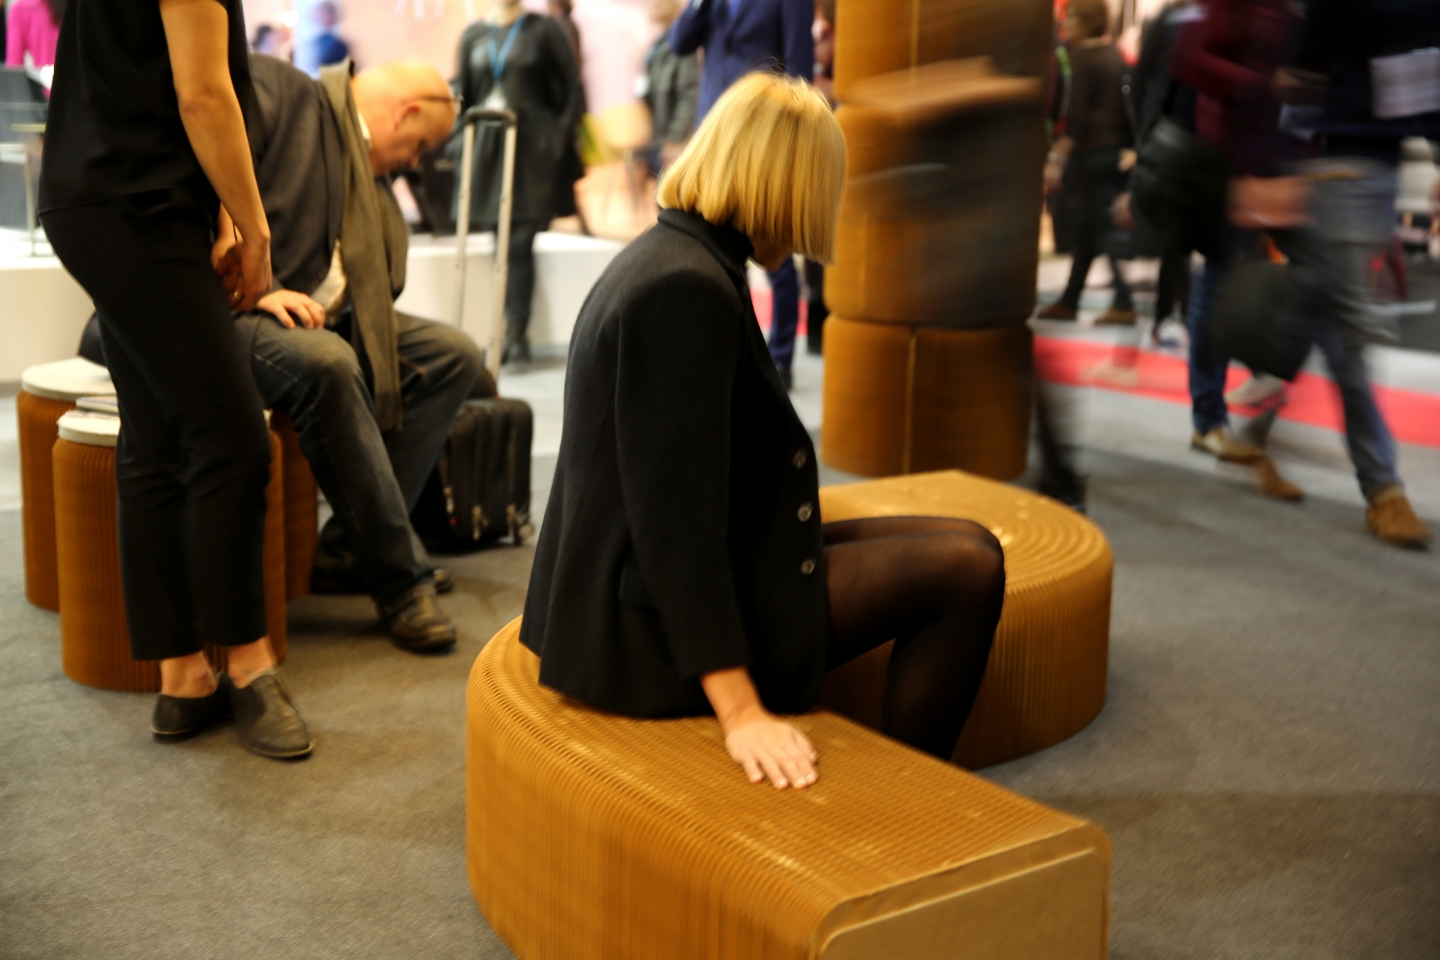 woman sits on a softseating fanning stool + bench at Maison and Objet - modular paper furniture by molo